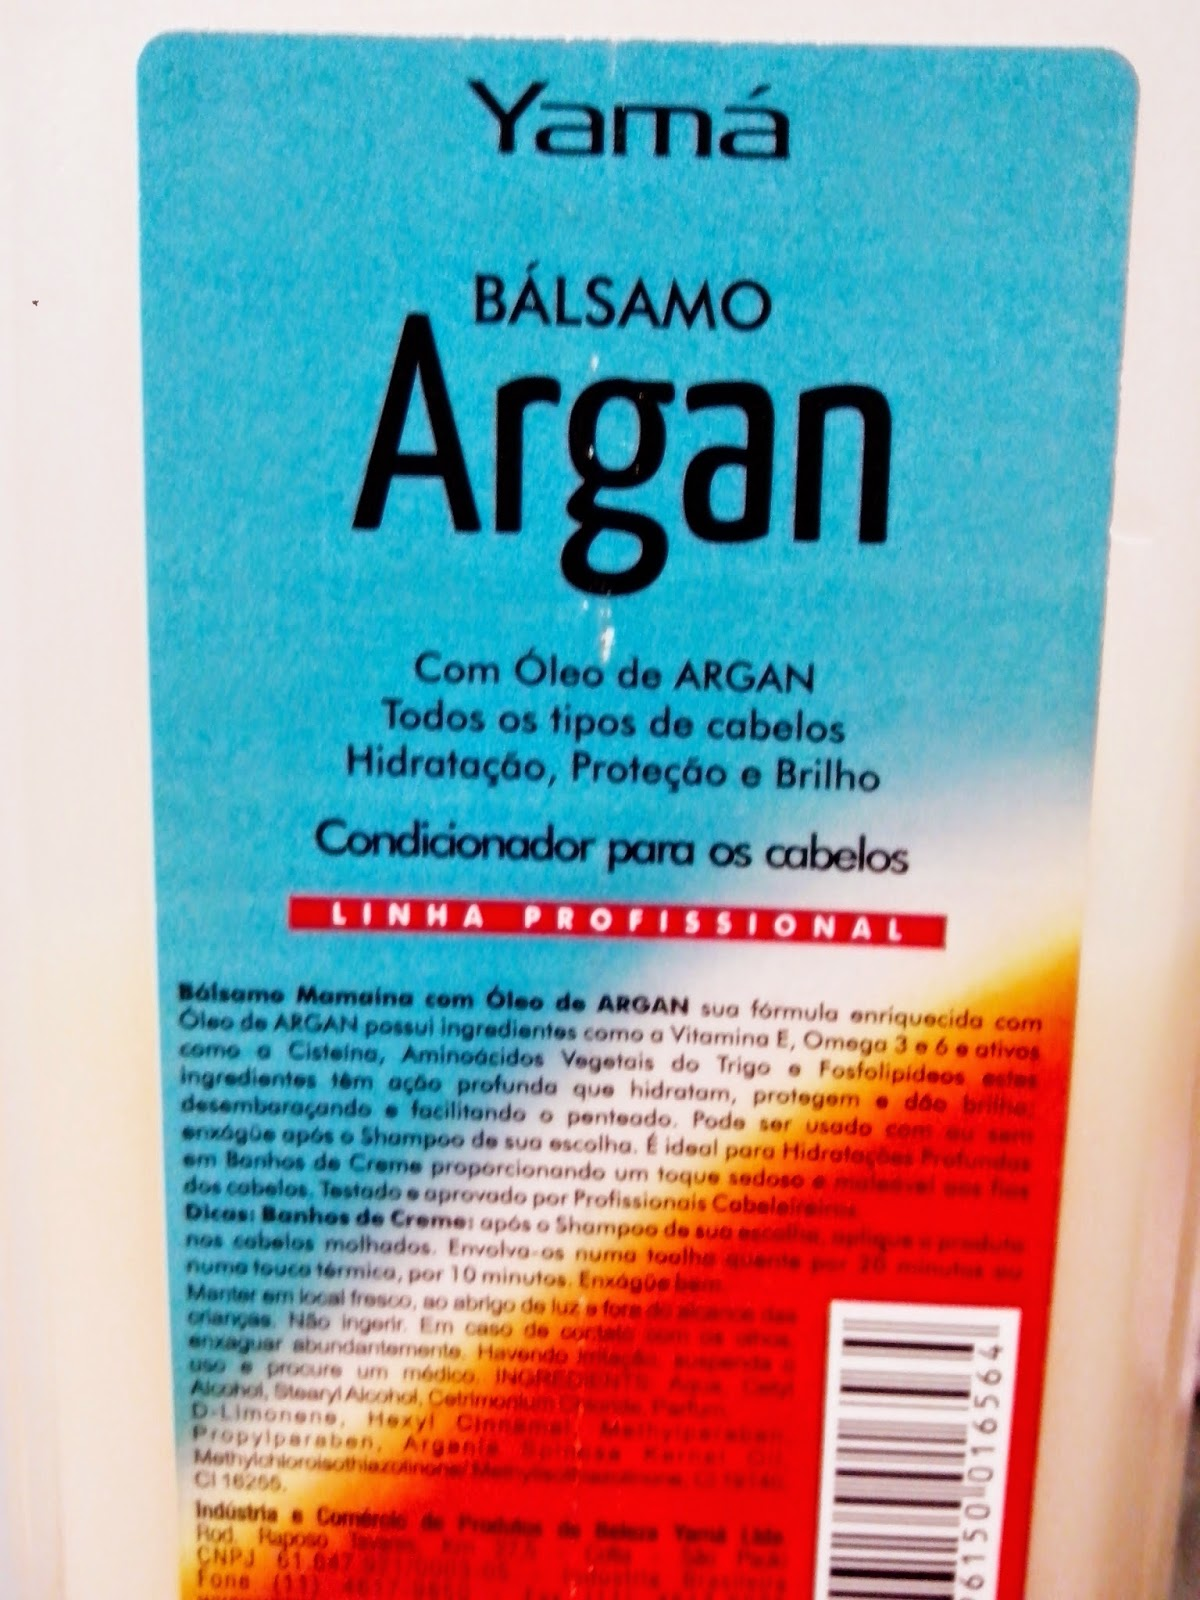 Yamá Balsamo Argan low poo no poo